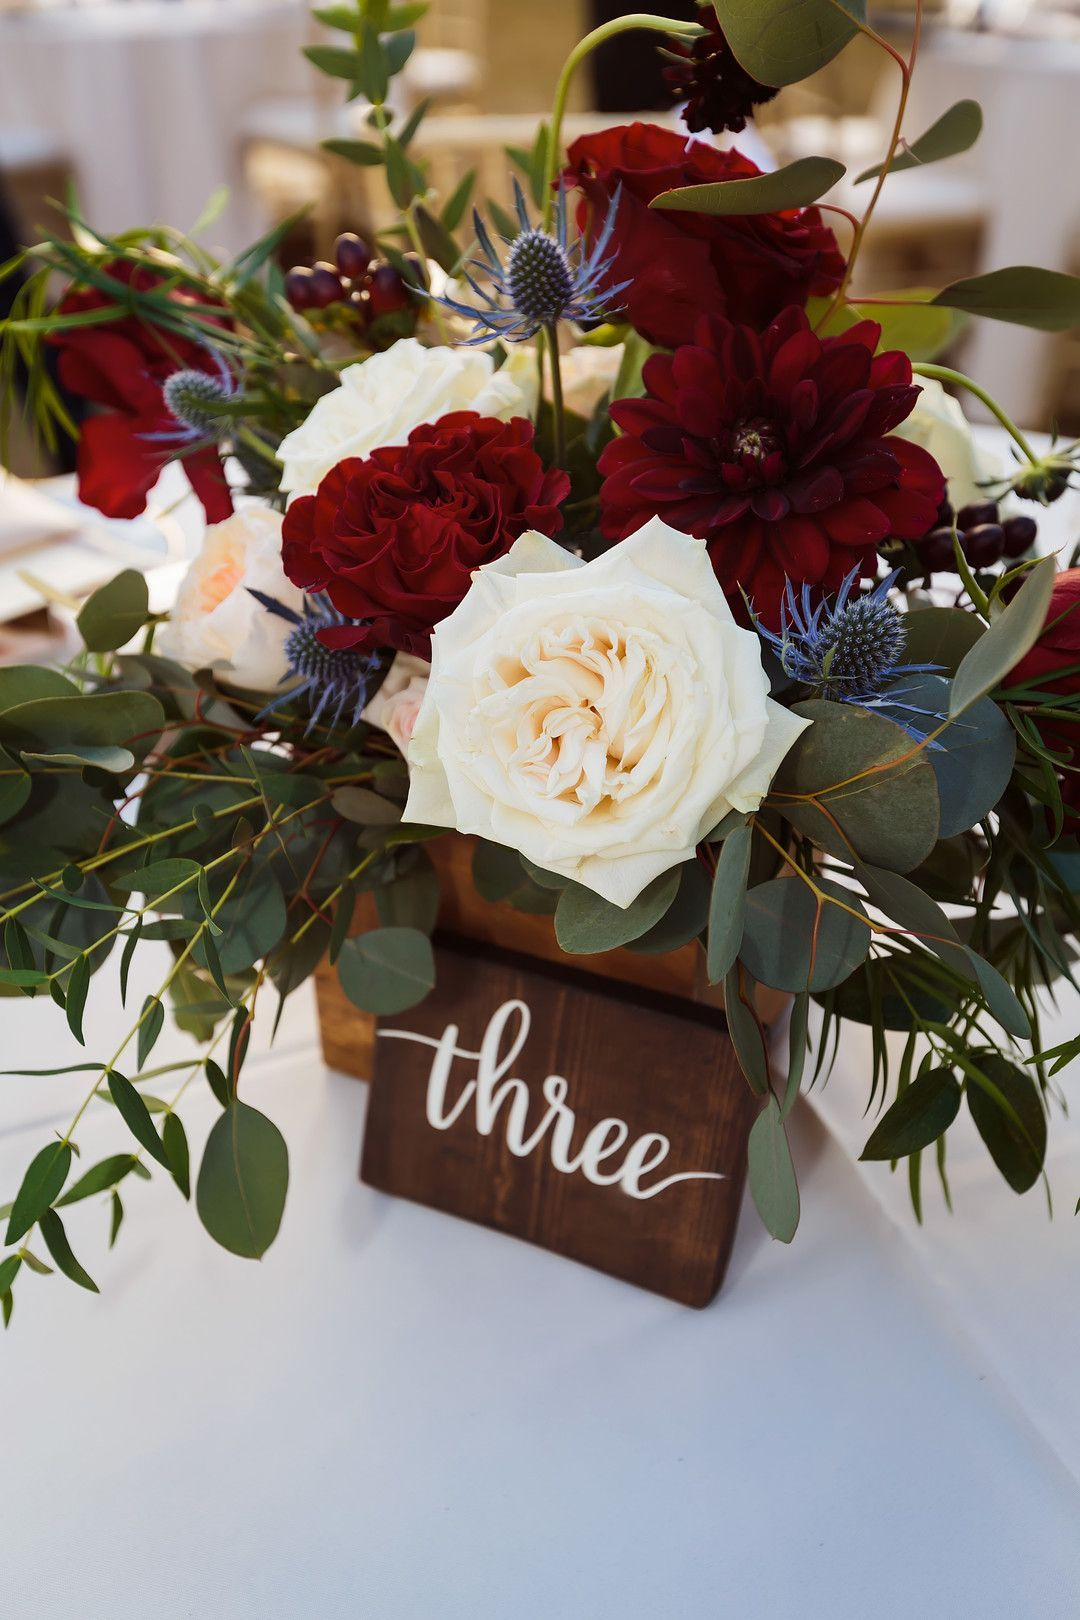 Julianne & Eric's Elegant Burgundy & White Estate Wedding - The Celebration Society